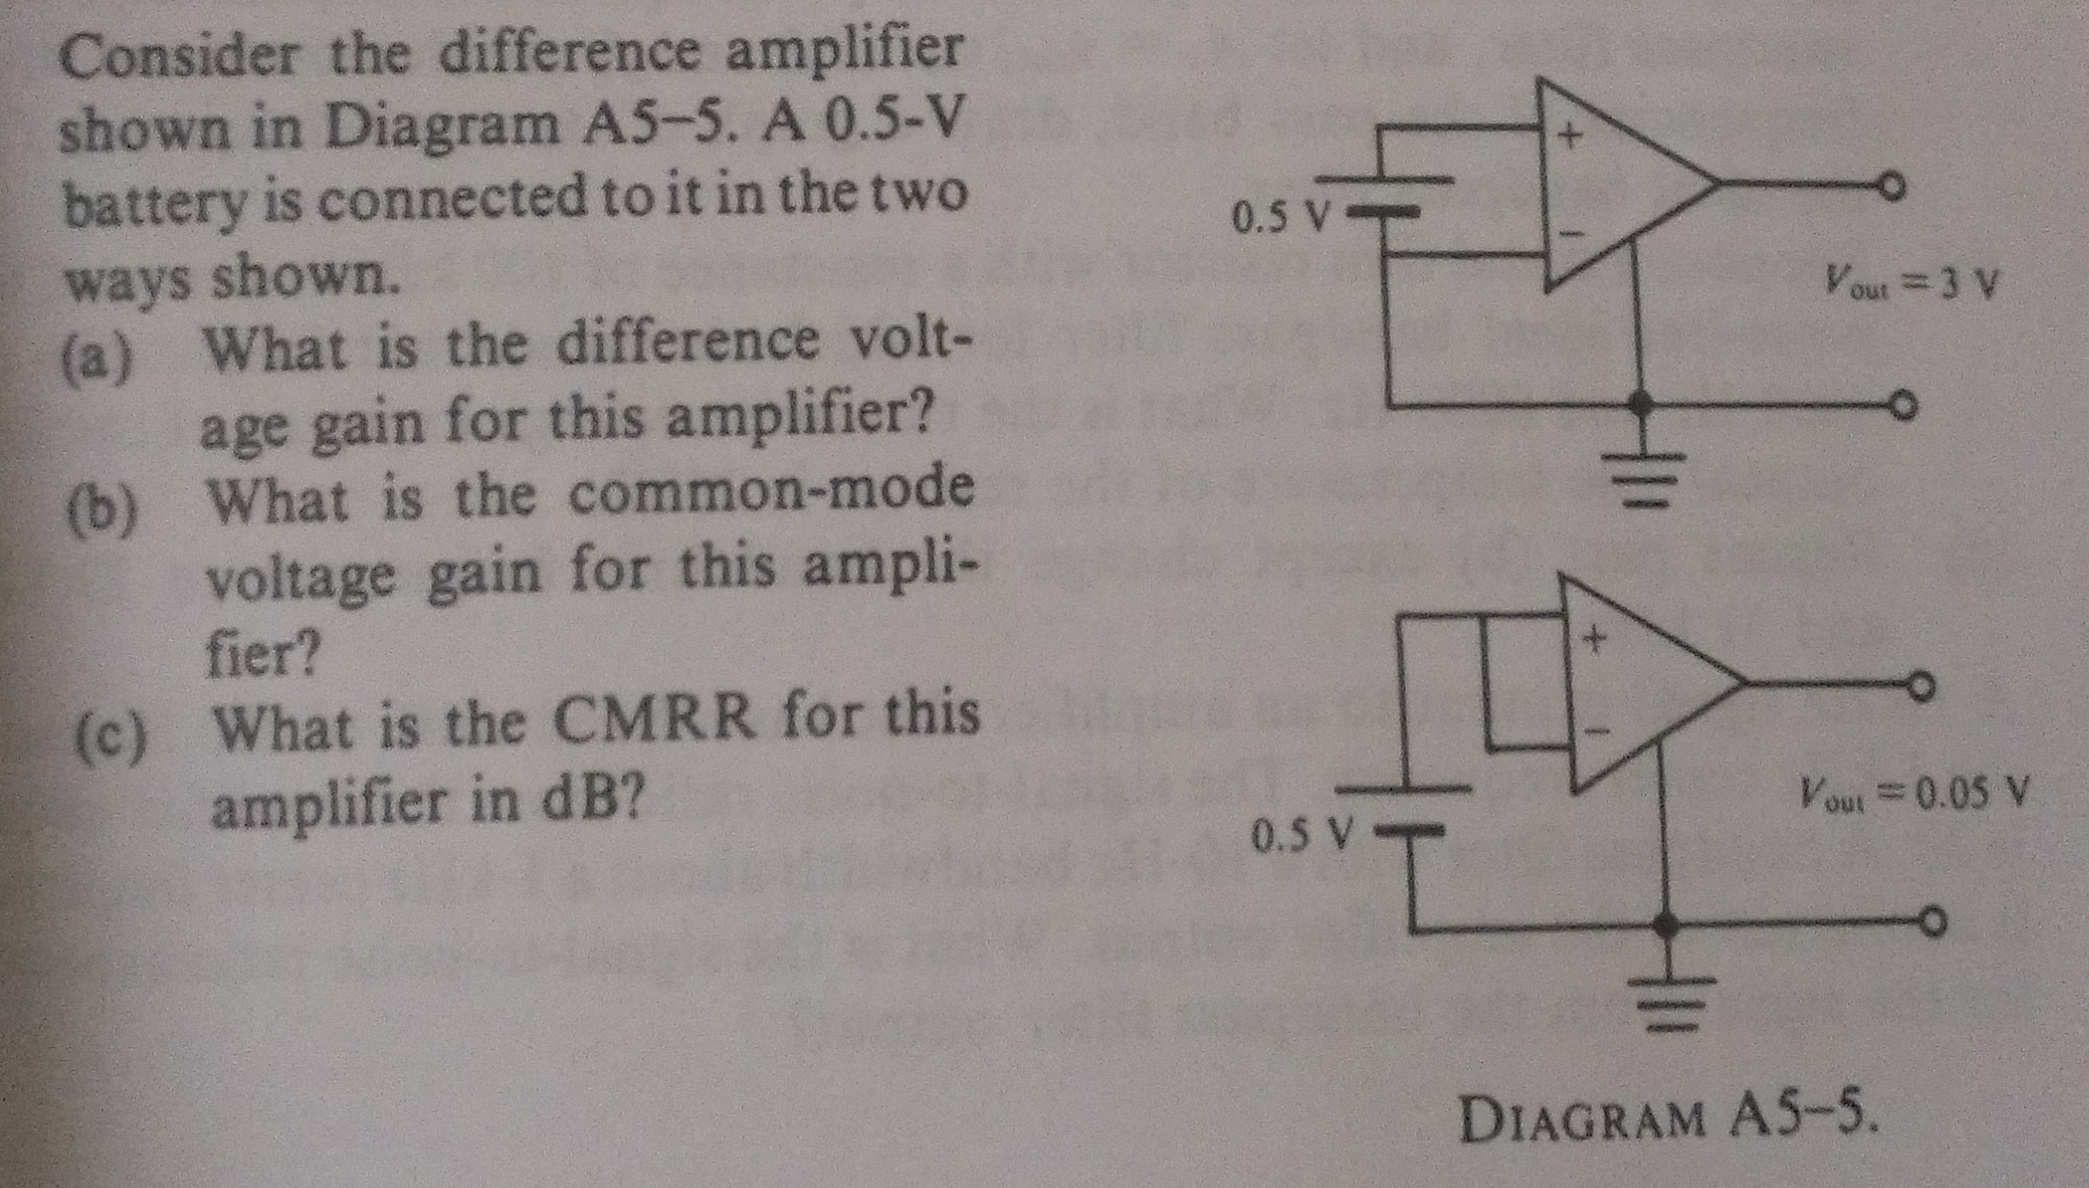 Consider the difference amplifier shown in Diagram